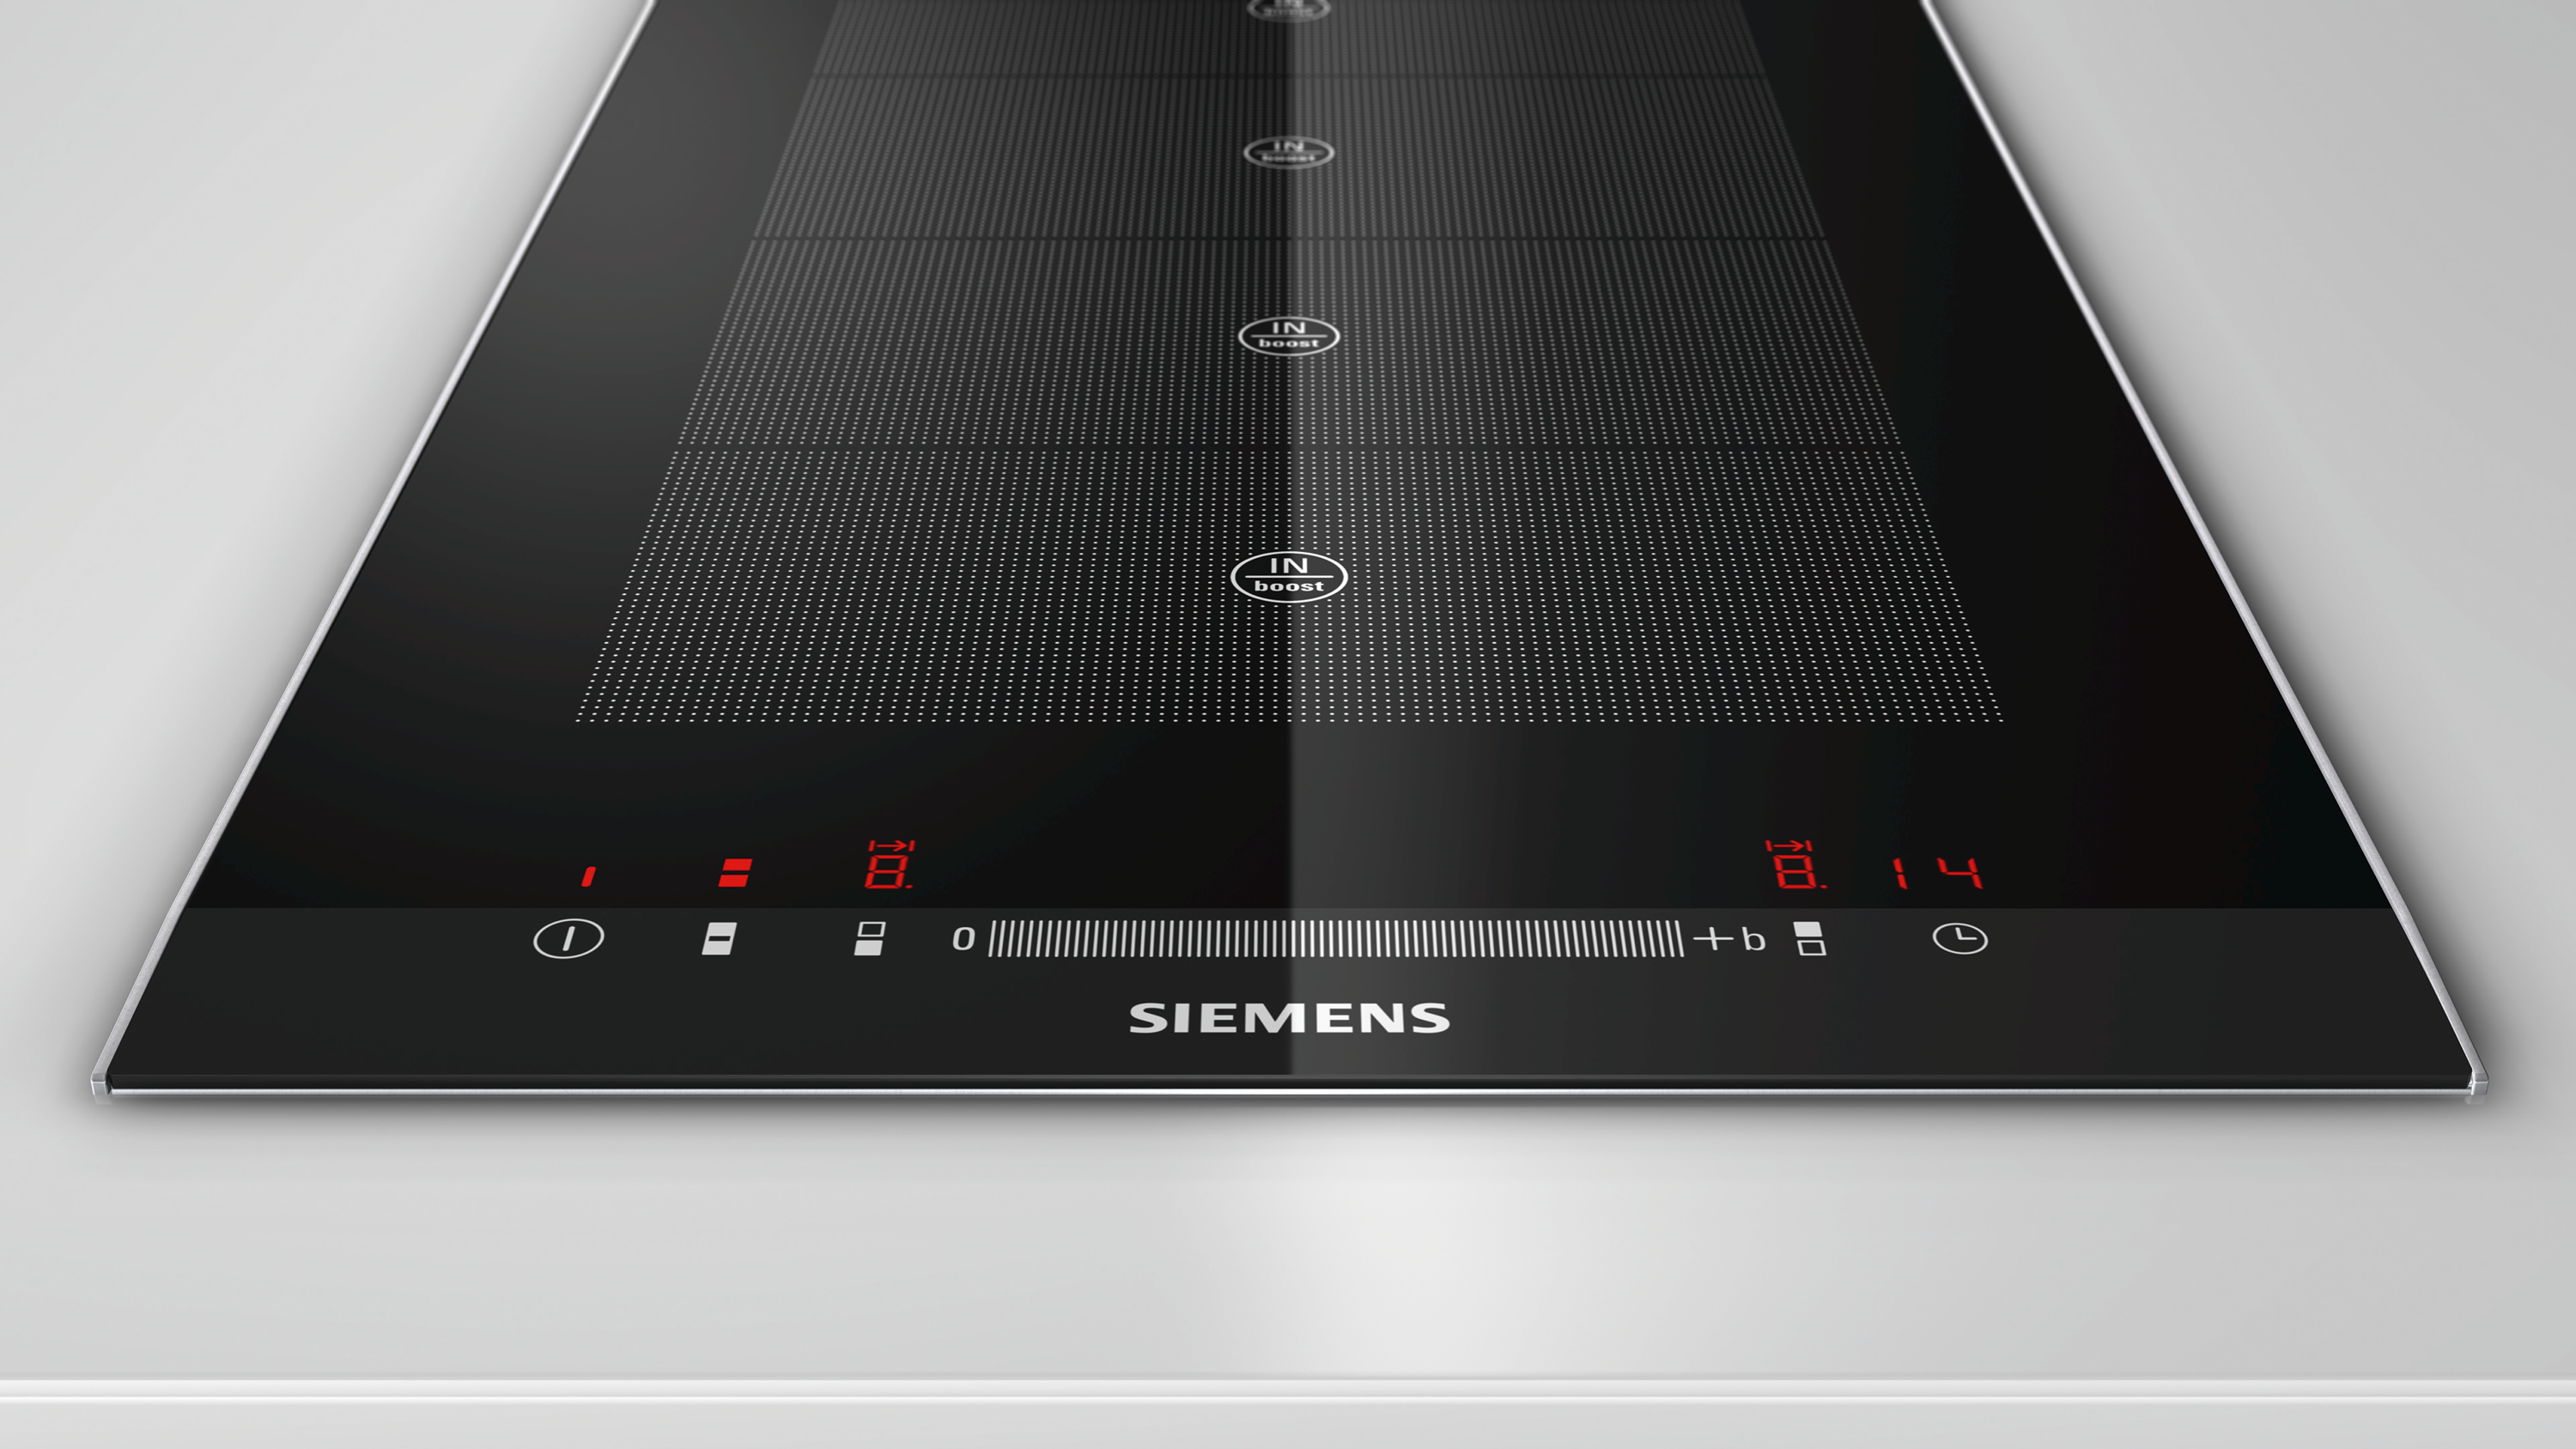 siemens iq700 domino touchslider induction hob eh375mv17e. Black Bedroom Furniture Sets. Home Design Ideas